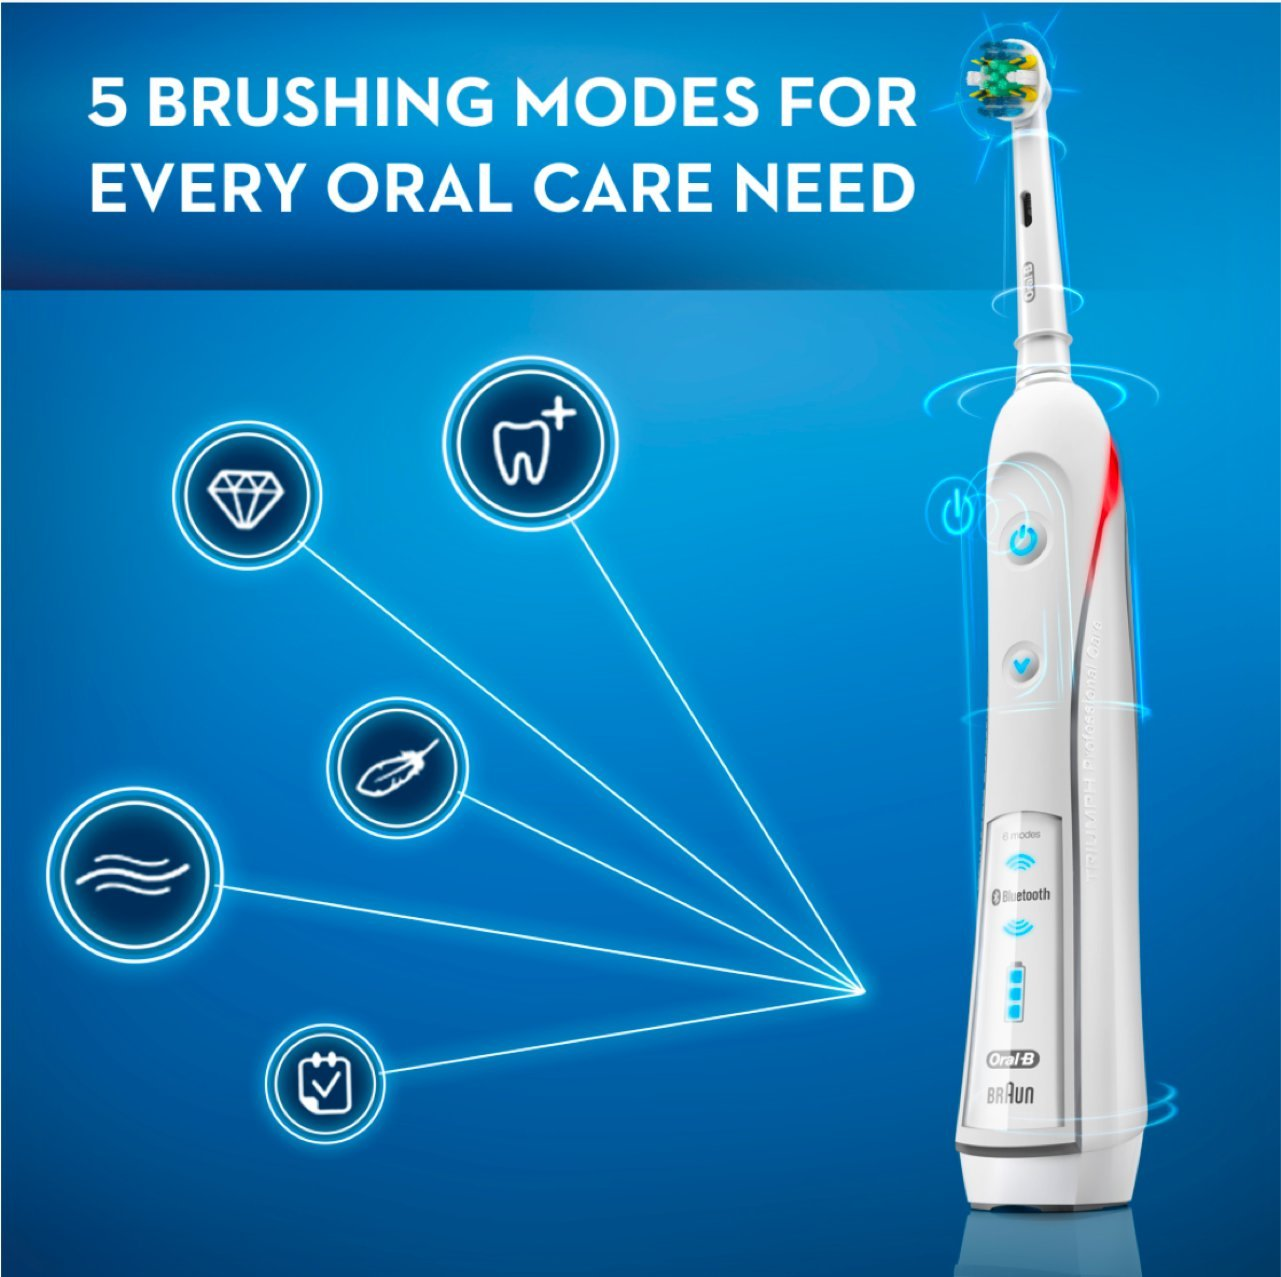 Electric toothbrush Braun Oral-B 5000: description, features, specifications and reviews